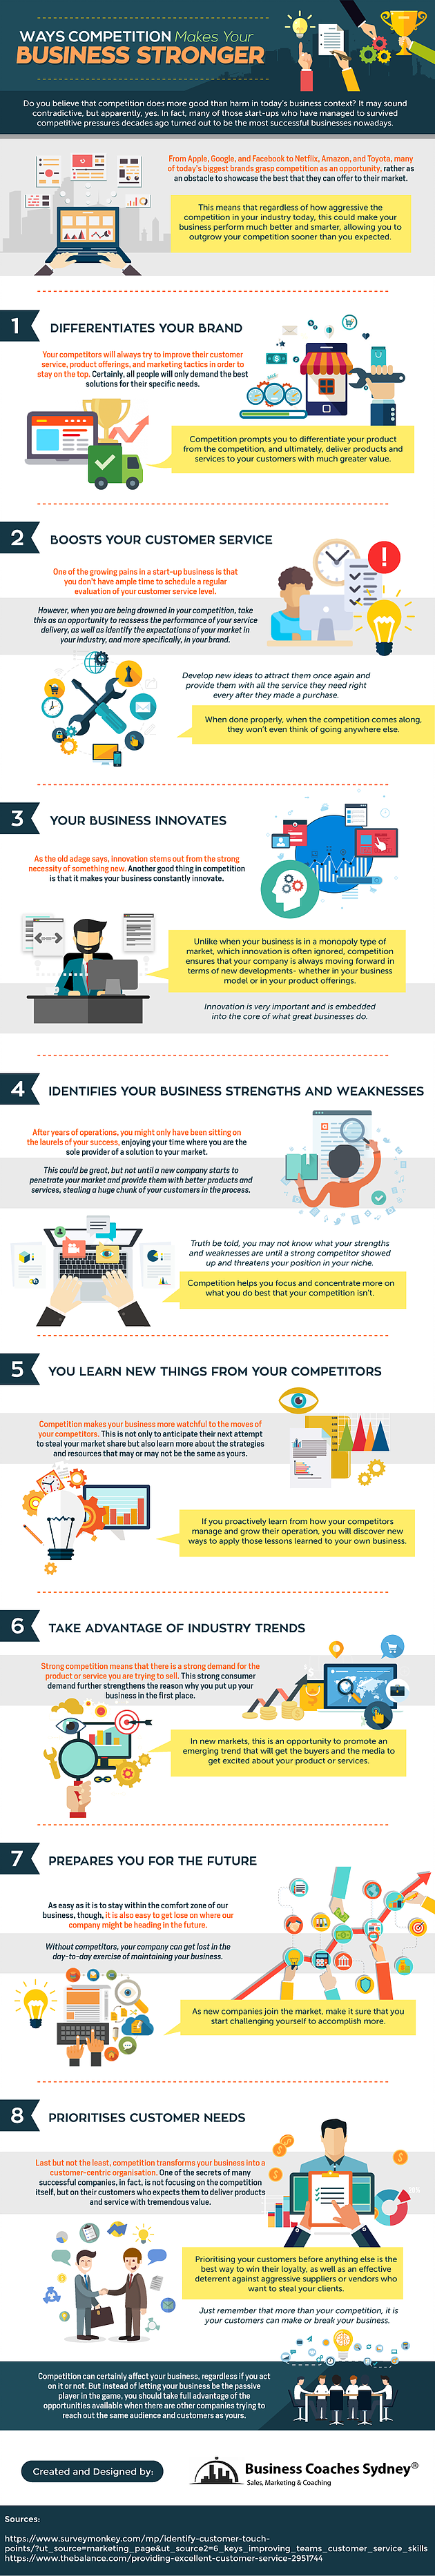 Competition makes your business stronger [Infographic]